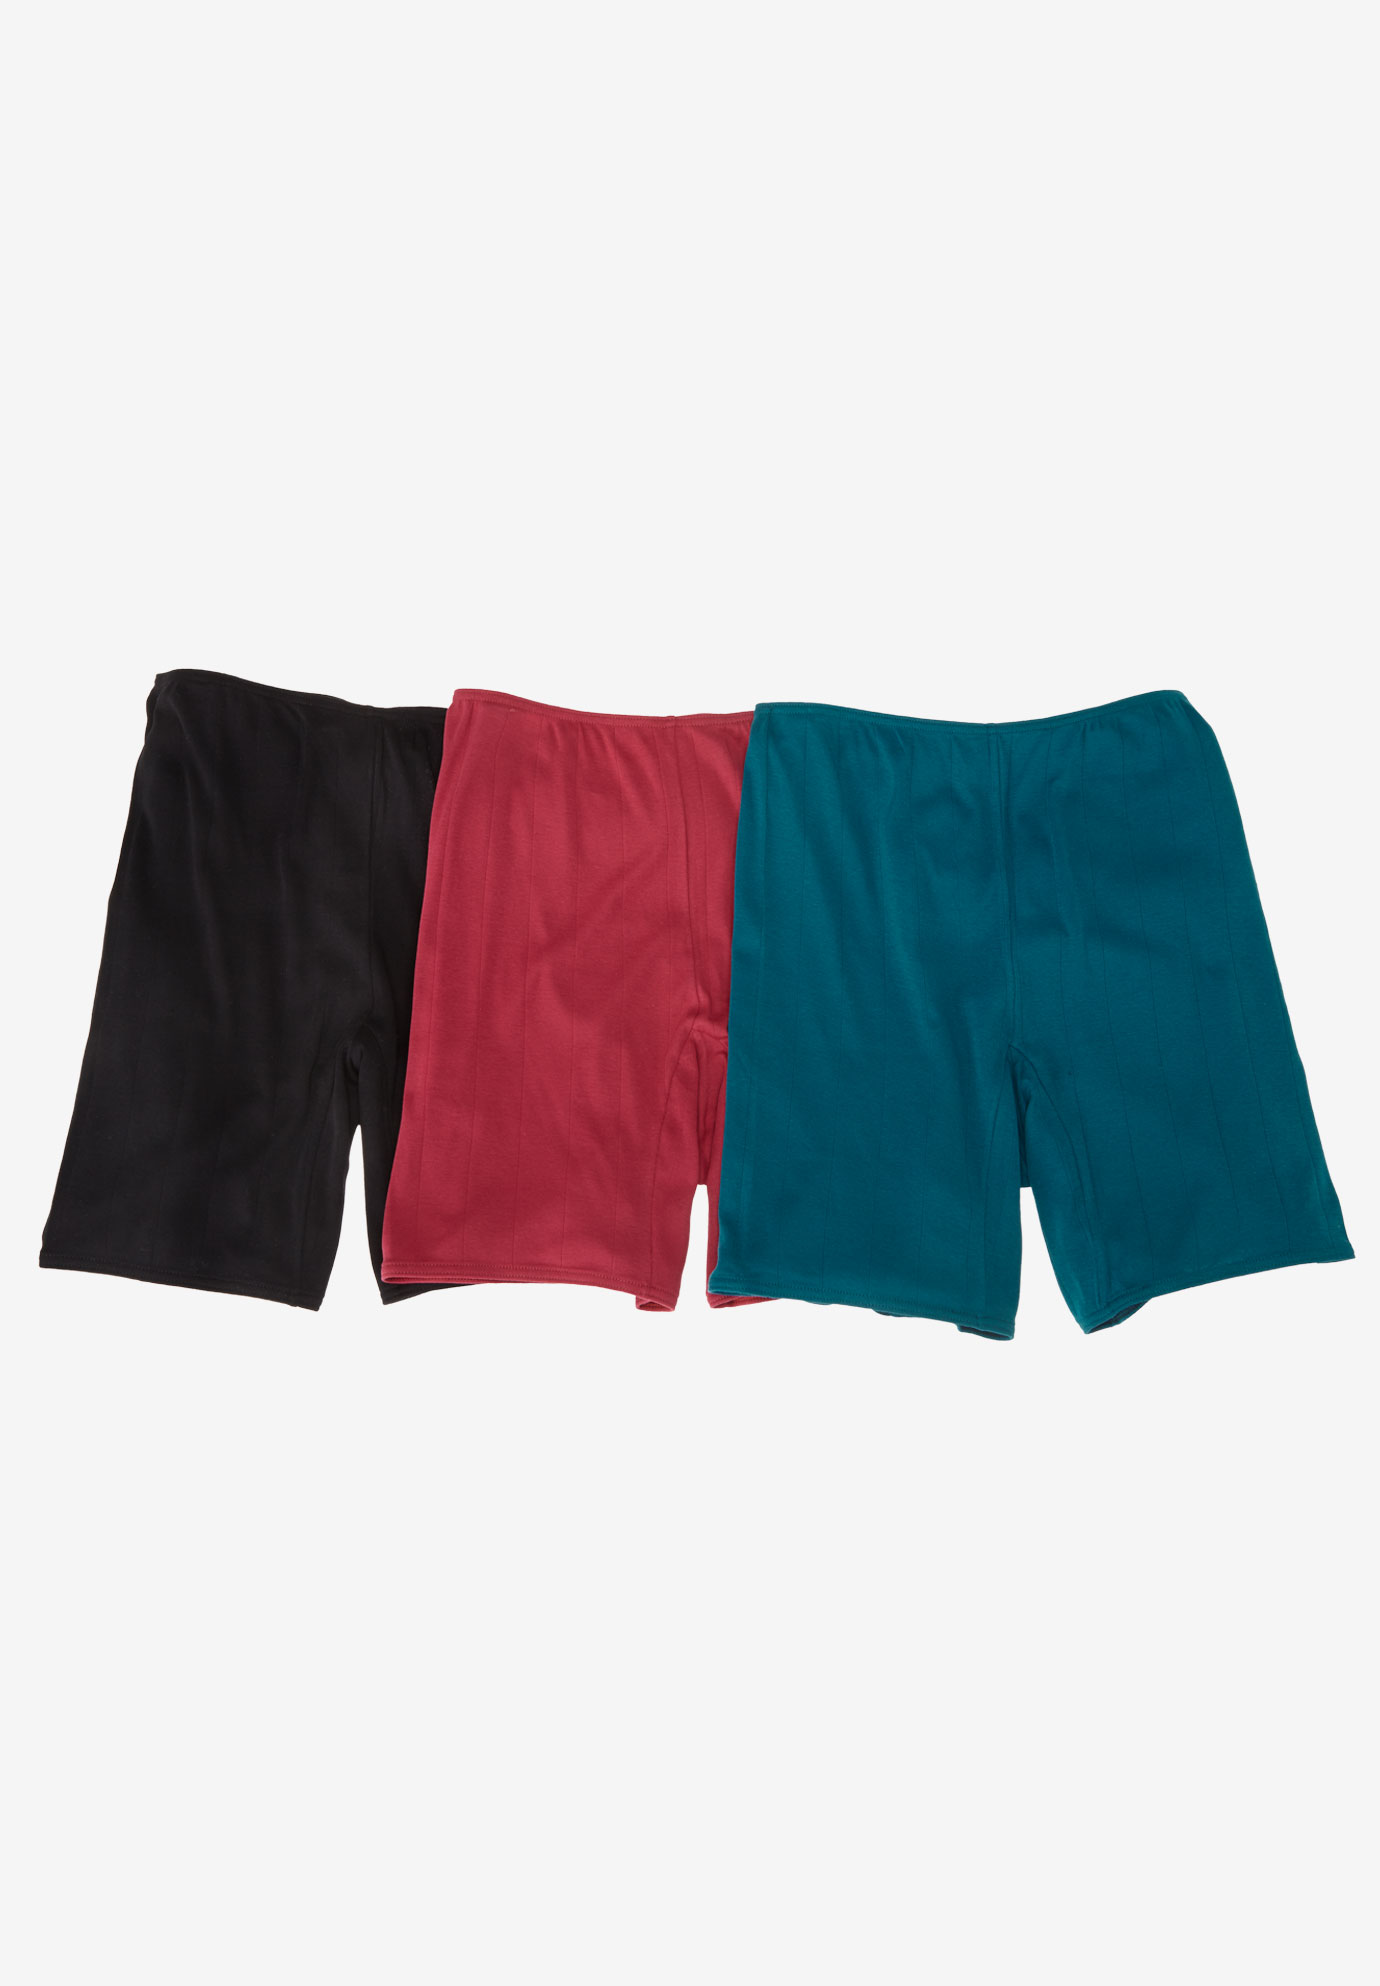 3-Pack Cotton Bloomers by Comfort Choice®, MIDTONE ASSORTED, hi-res